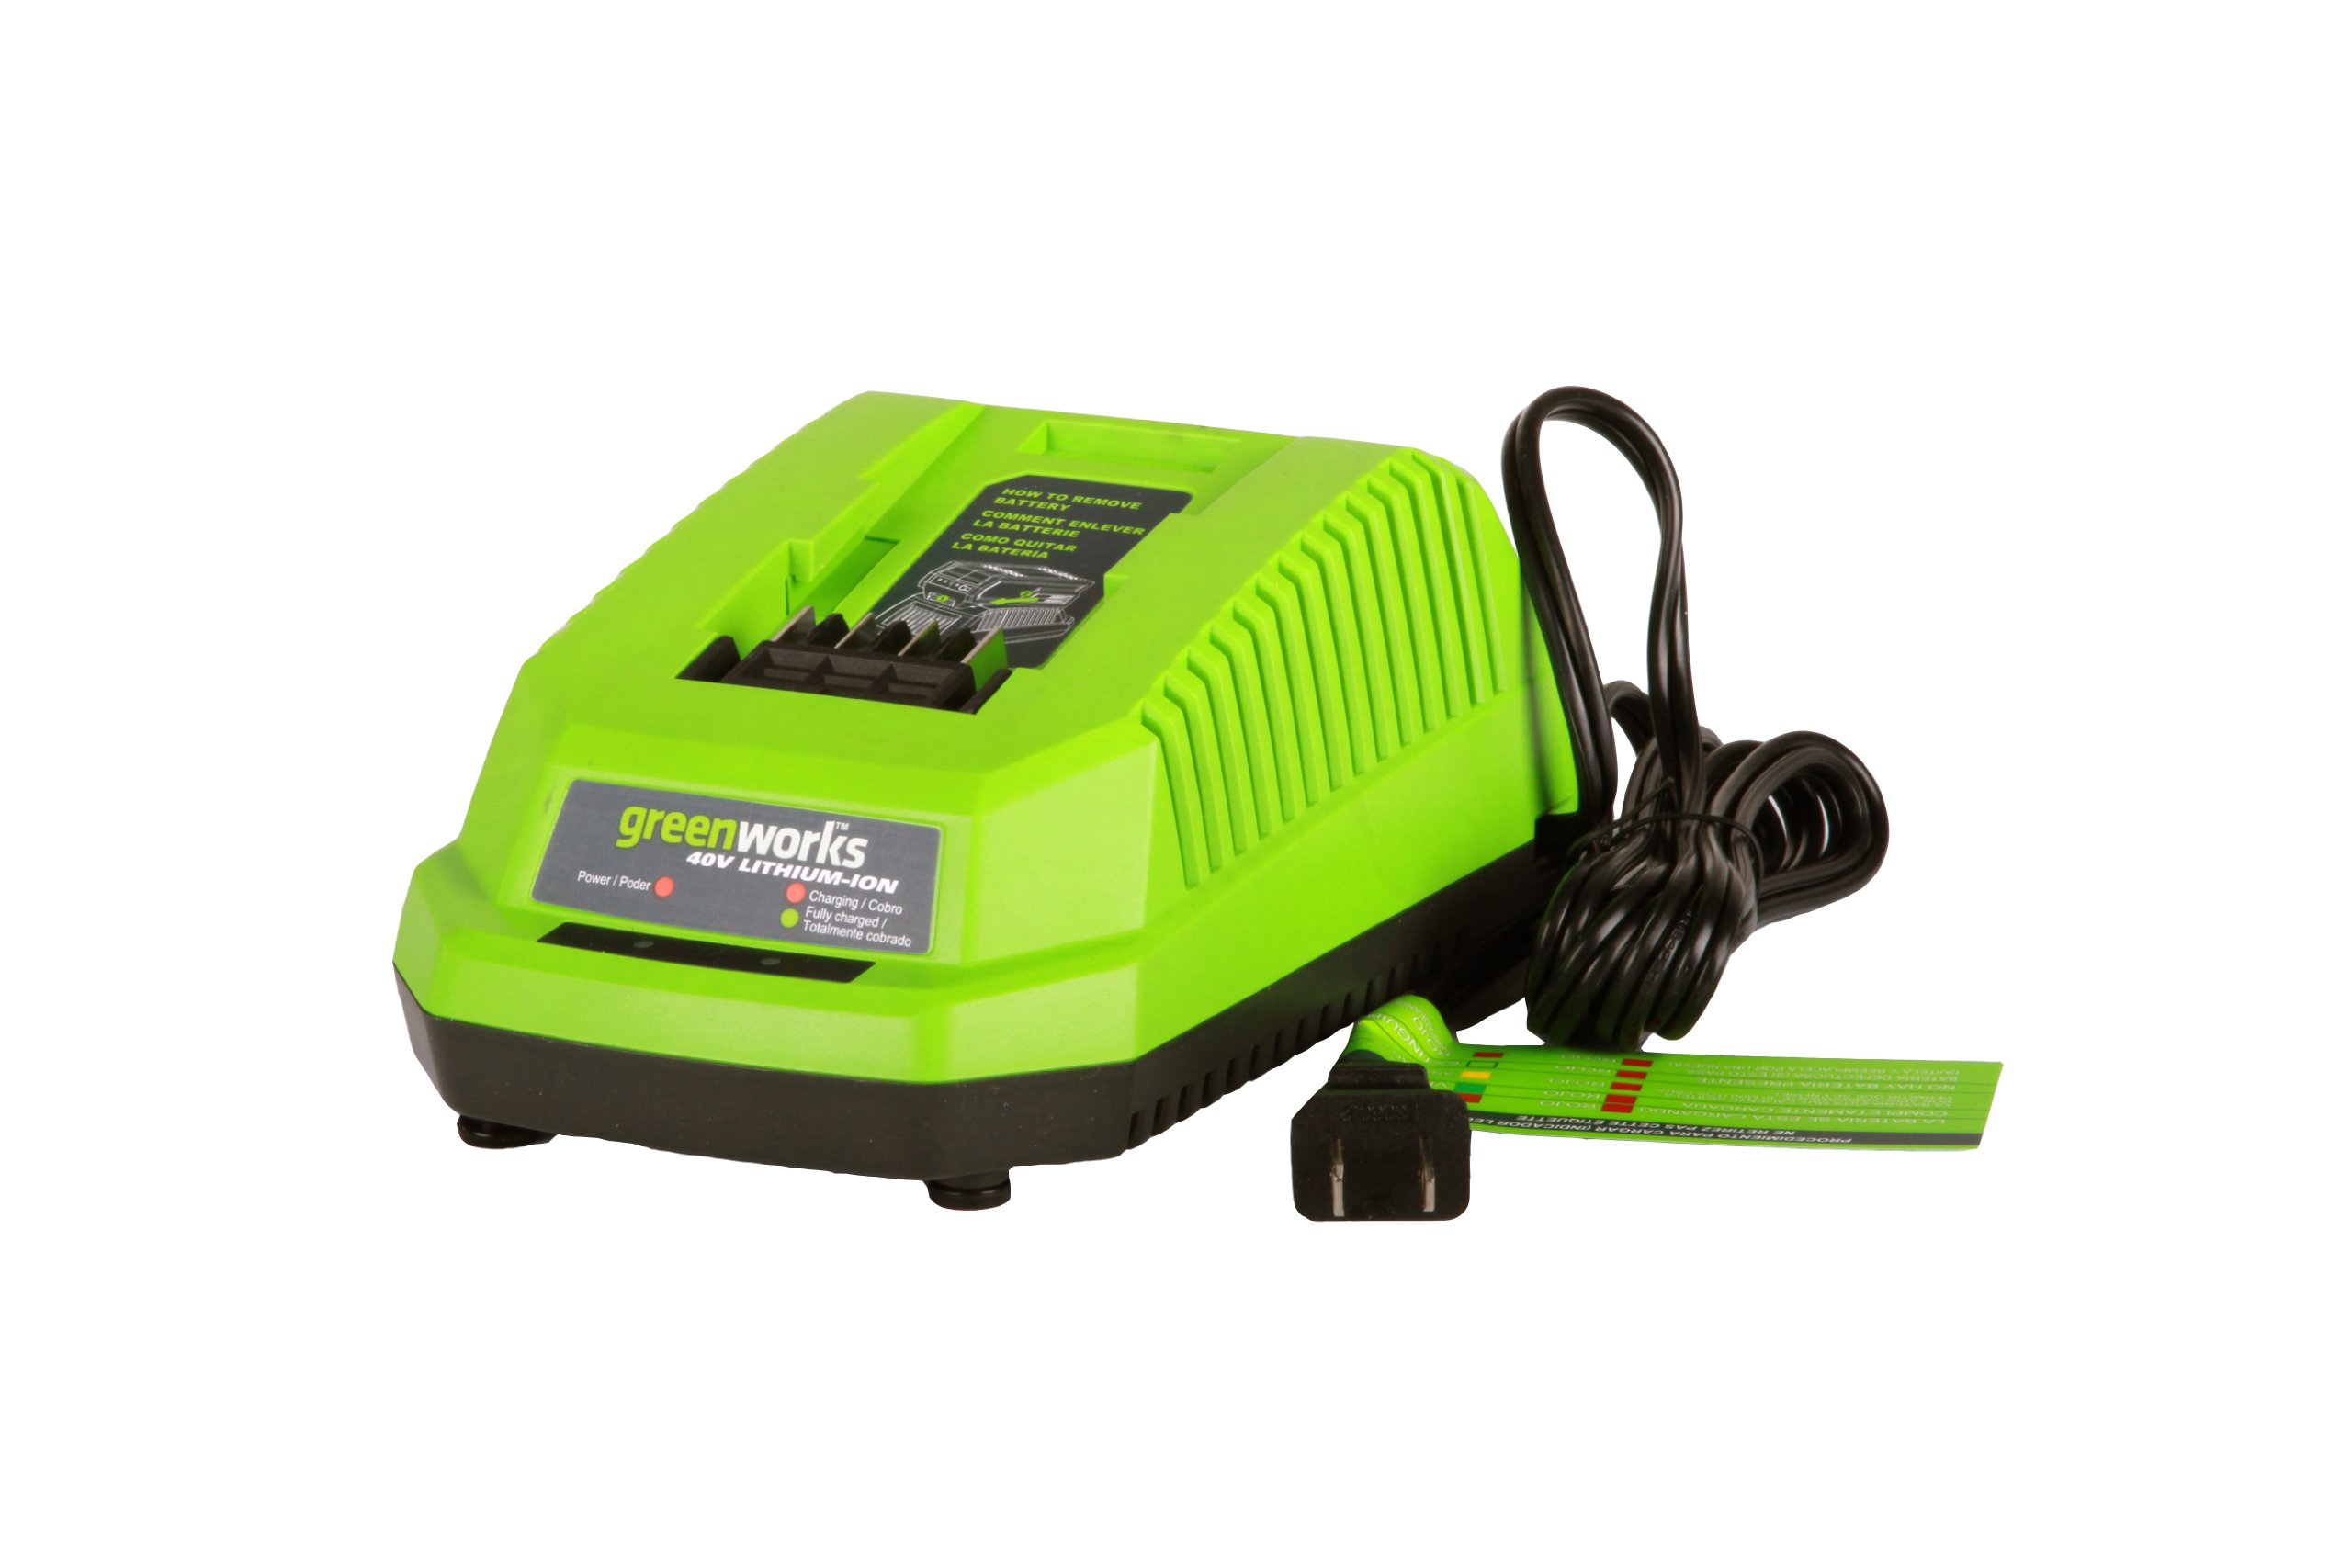 Greenworks 40V Lithium Ion Battery Charger 29482 by GreenWorks